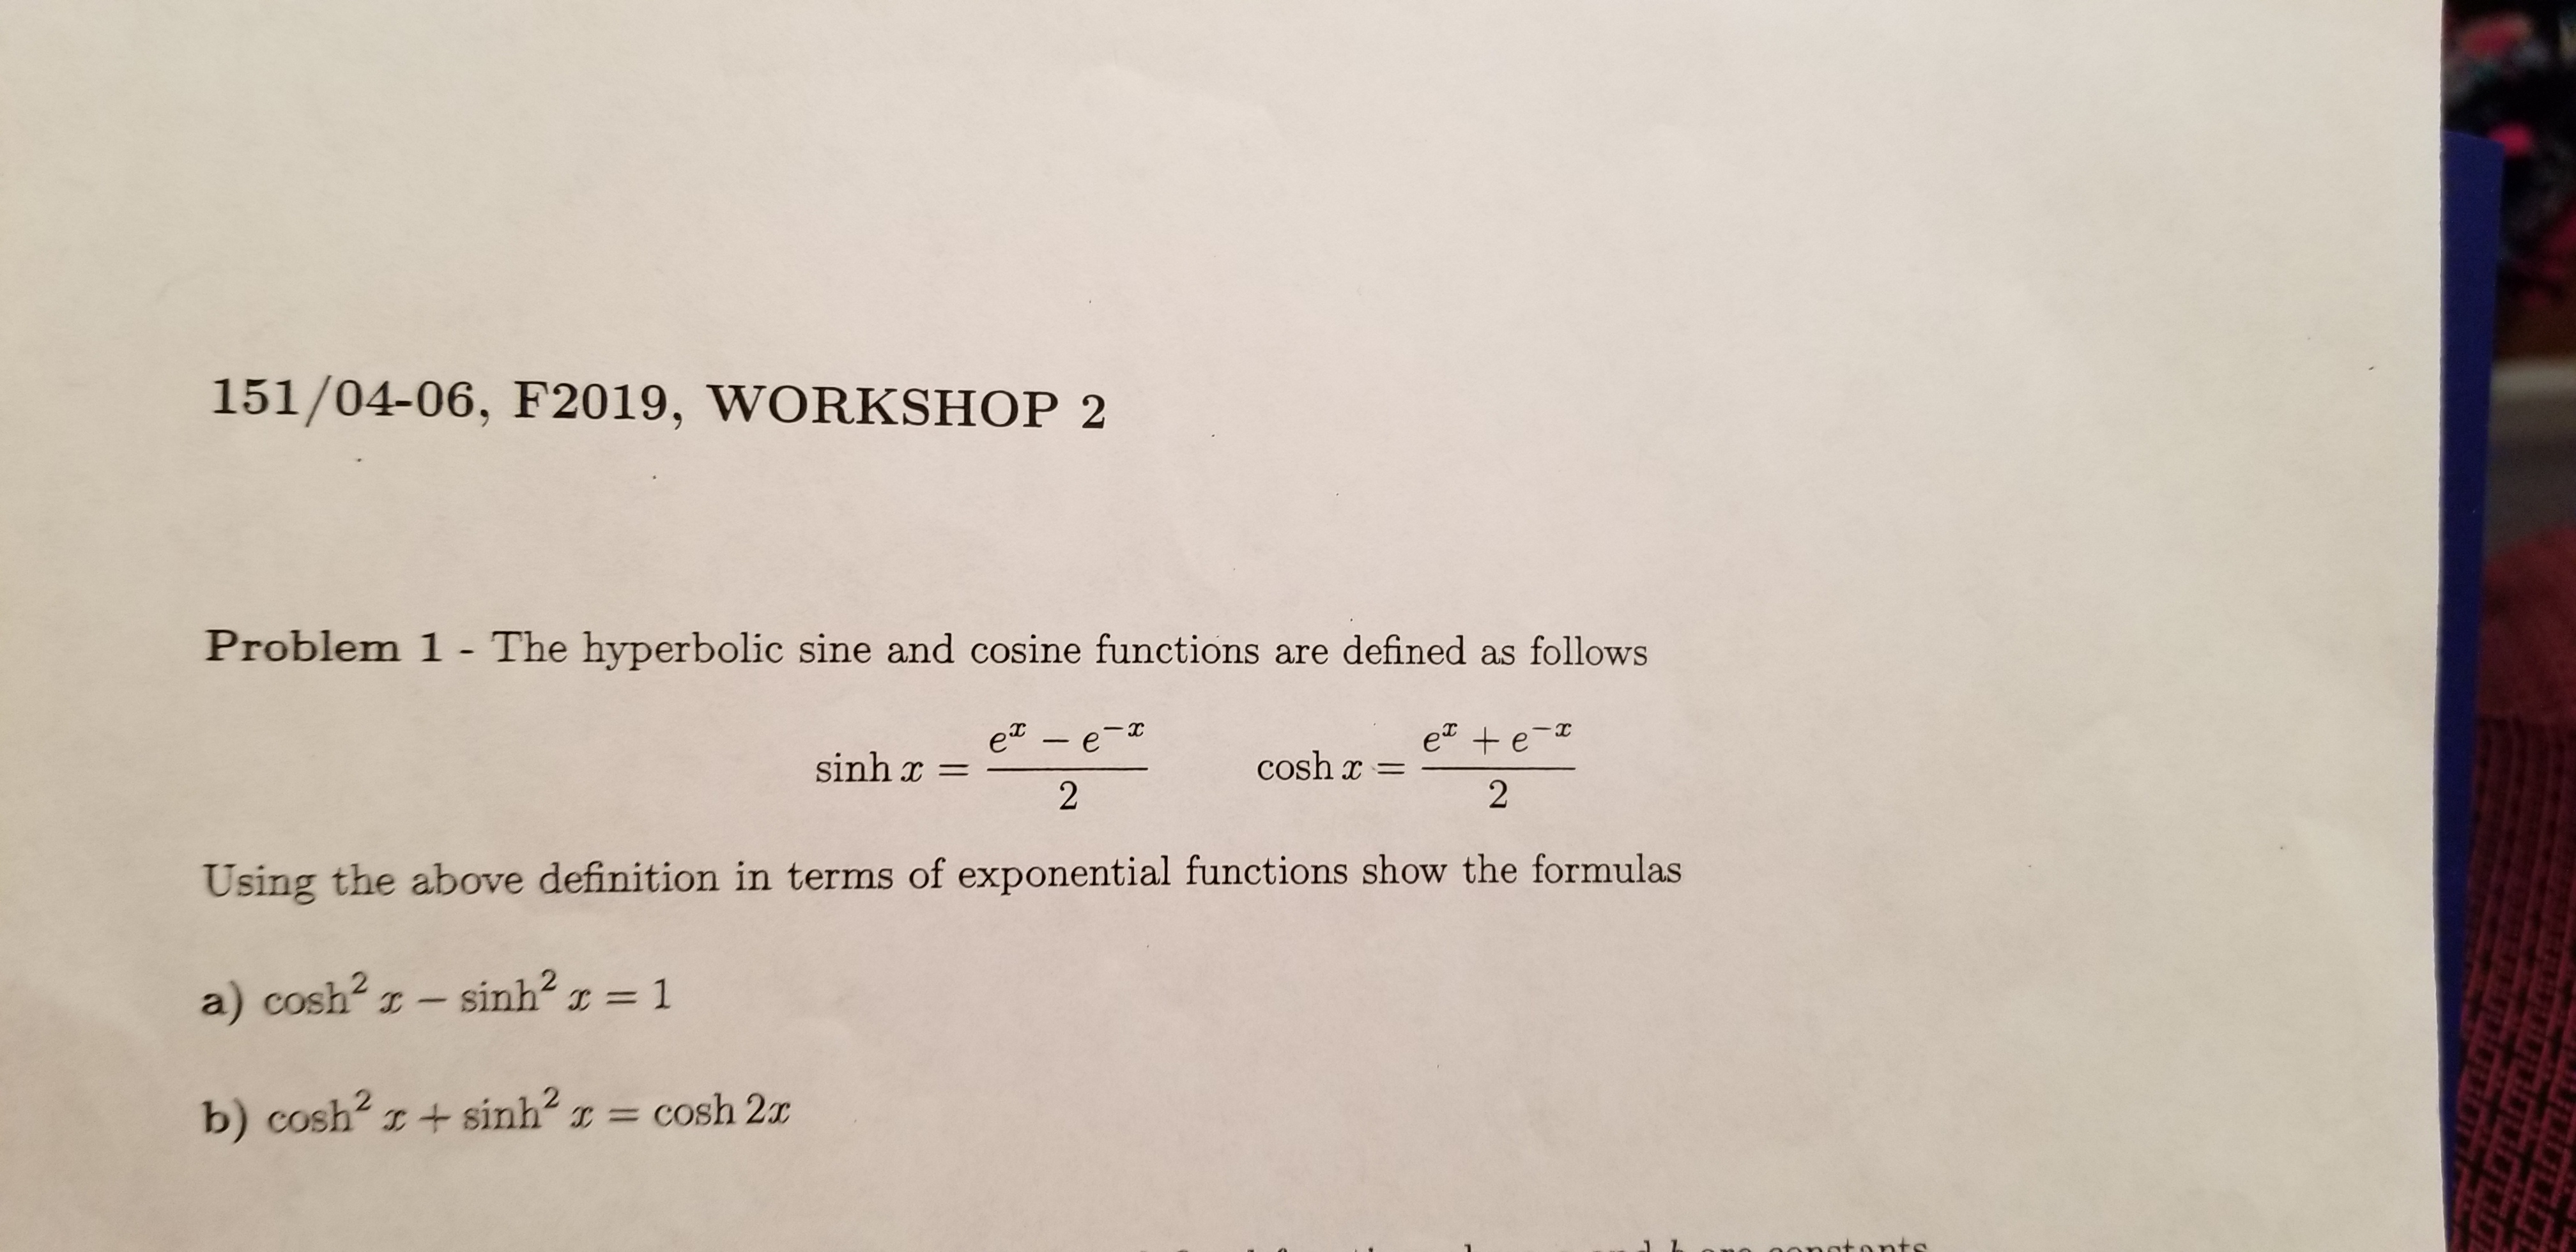 151/04-06, F2019, WORKSHOP 2 Problem 1 - The hyperbolic sine and cosine functions are defined as follows e + e- 2 e - e- sinh x cosh 2 Using the above definition in terms of exponential functions show the formulas a) cosh2 z- sinh2 1 C = IC CO = cosh 2x b) cosh2 I+sinh tonts